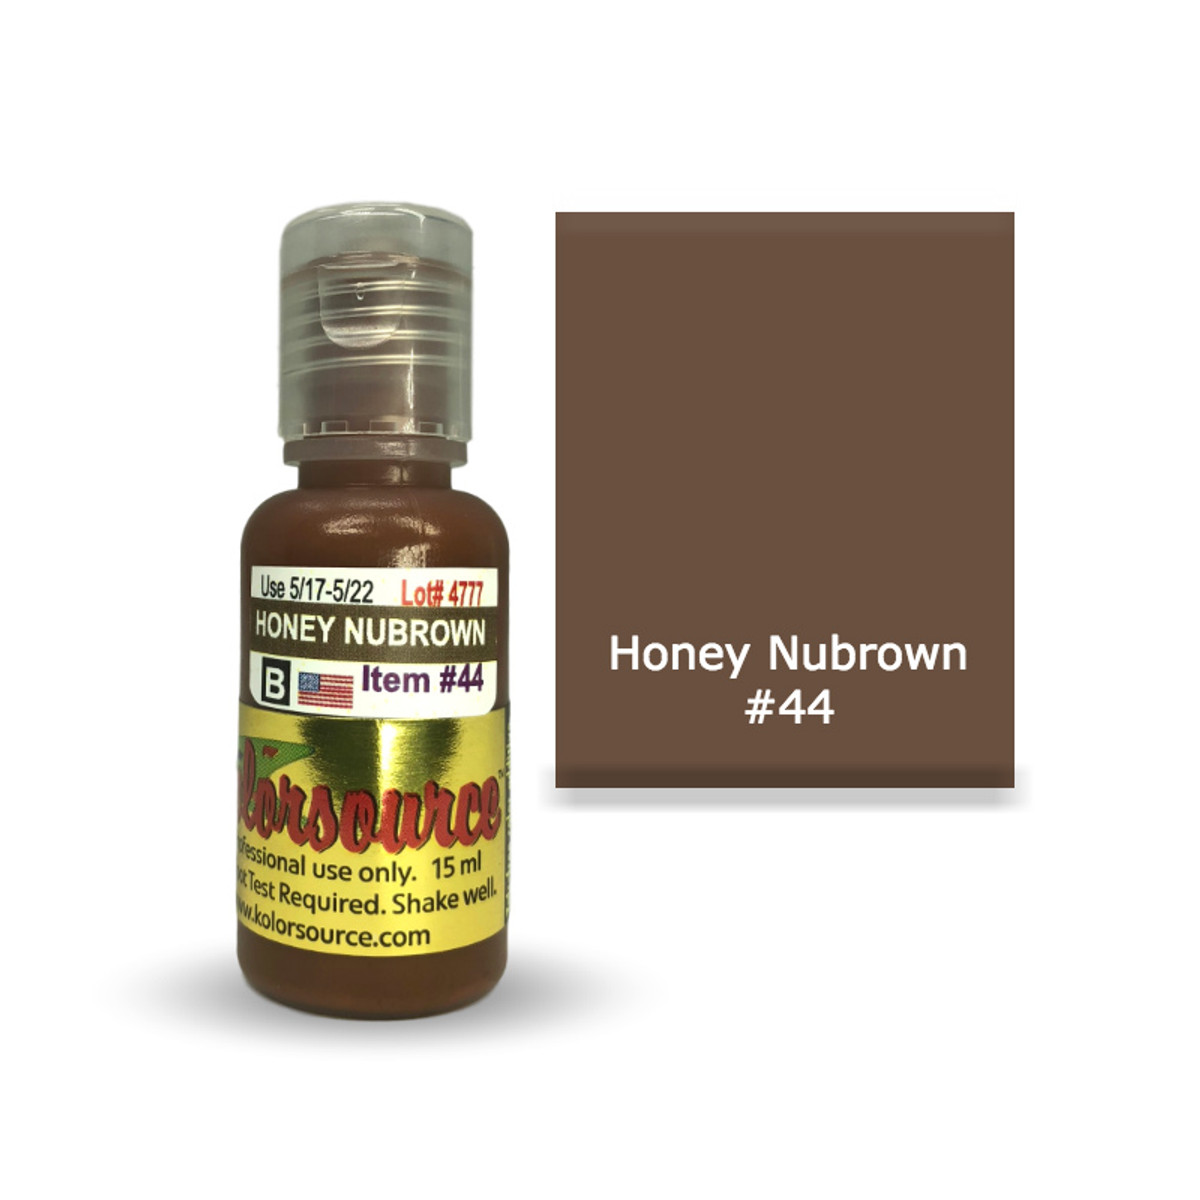 Kolorsource Permanent Makeup Pigment (PMU) Honey Nubrown #44 - 15ml